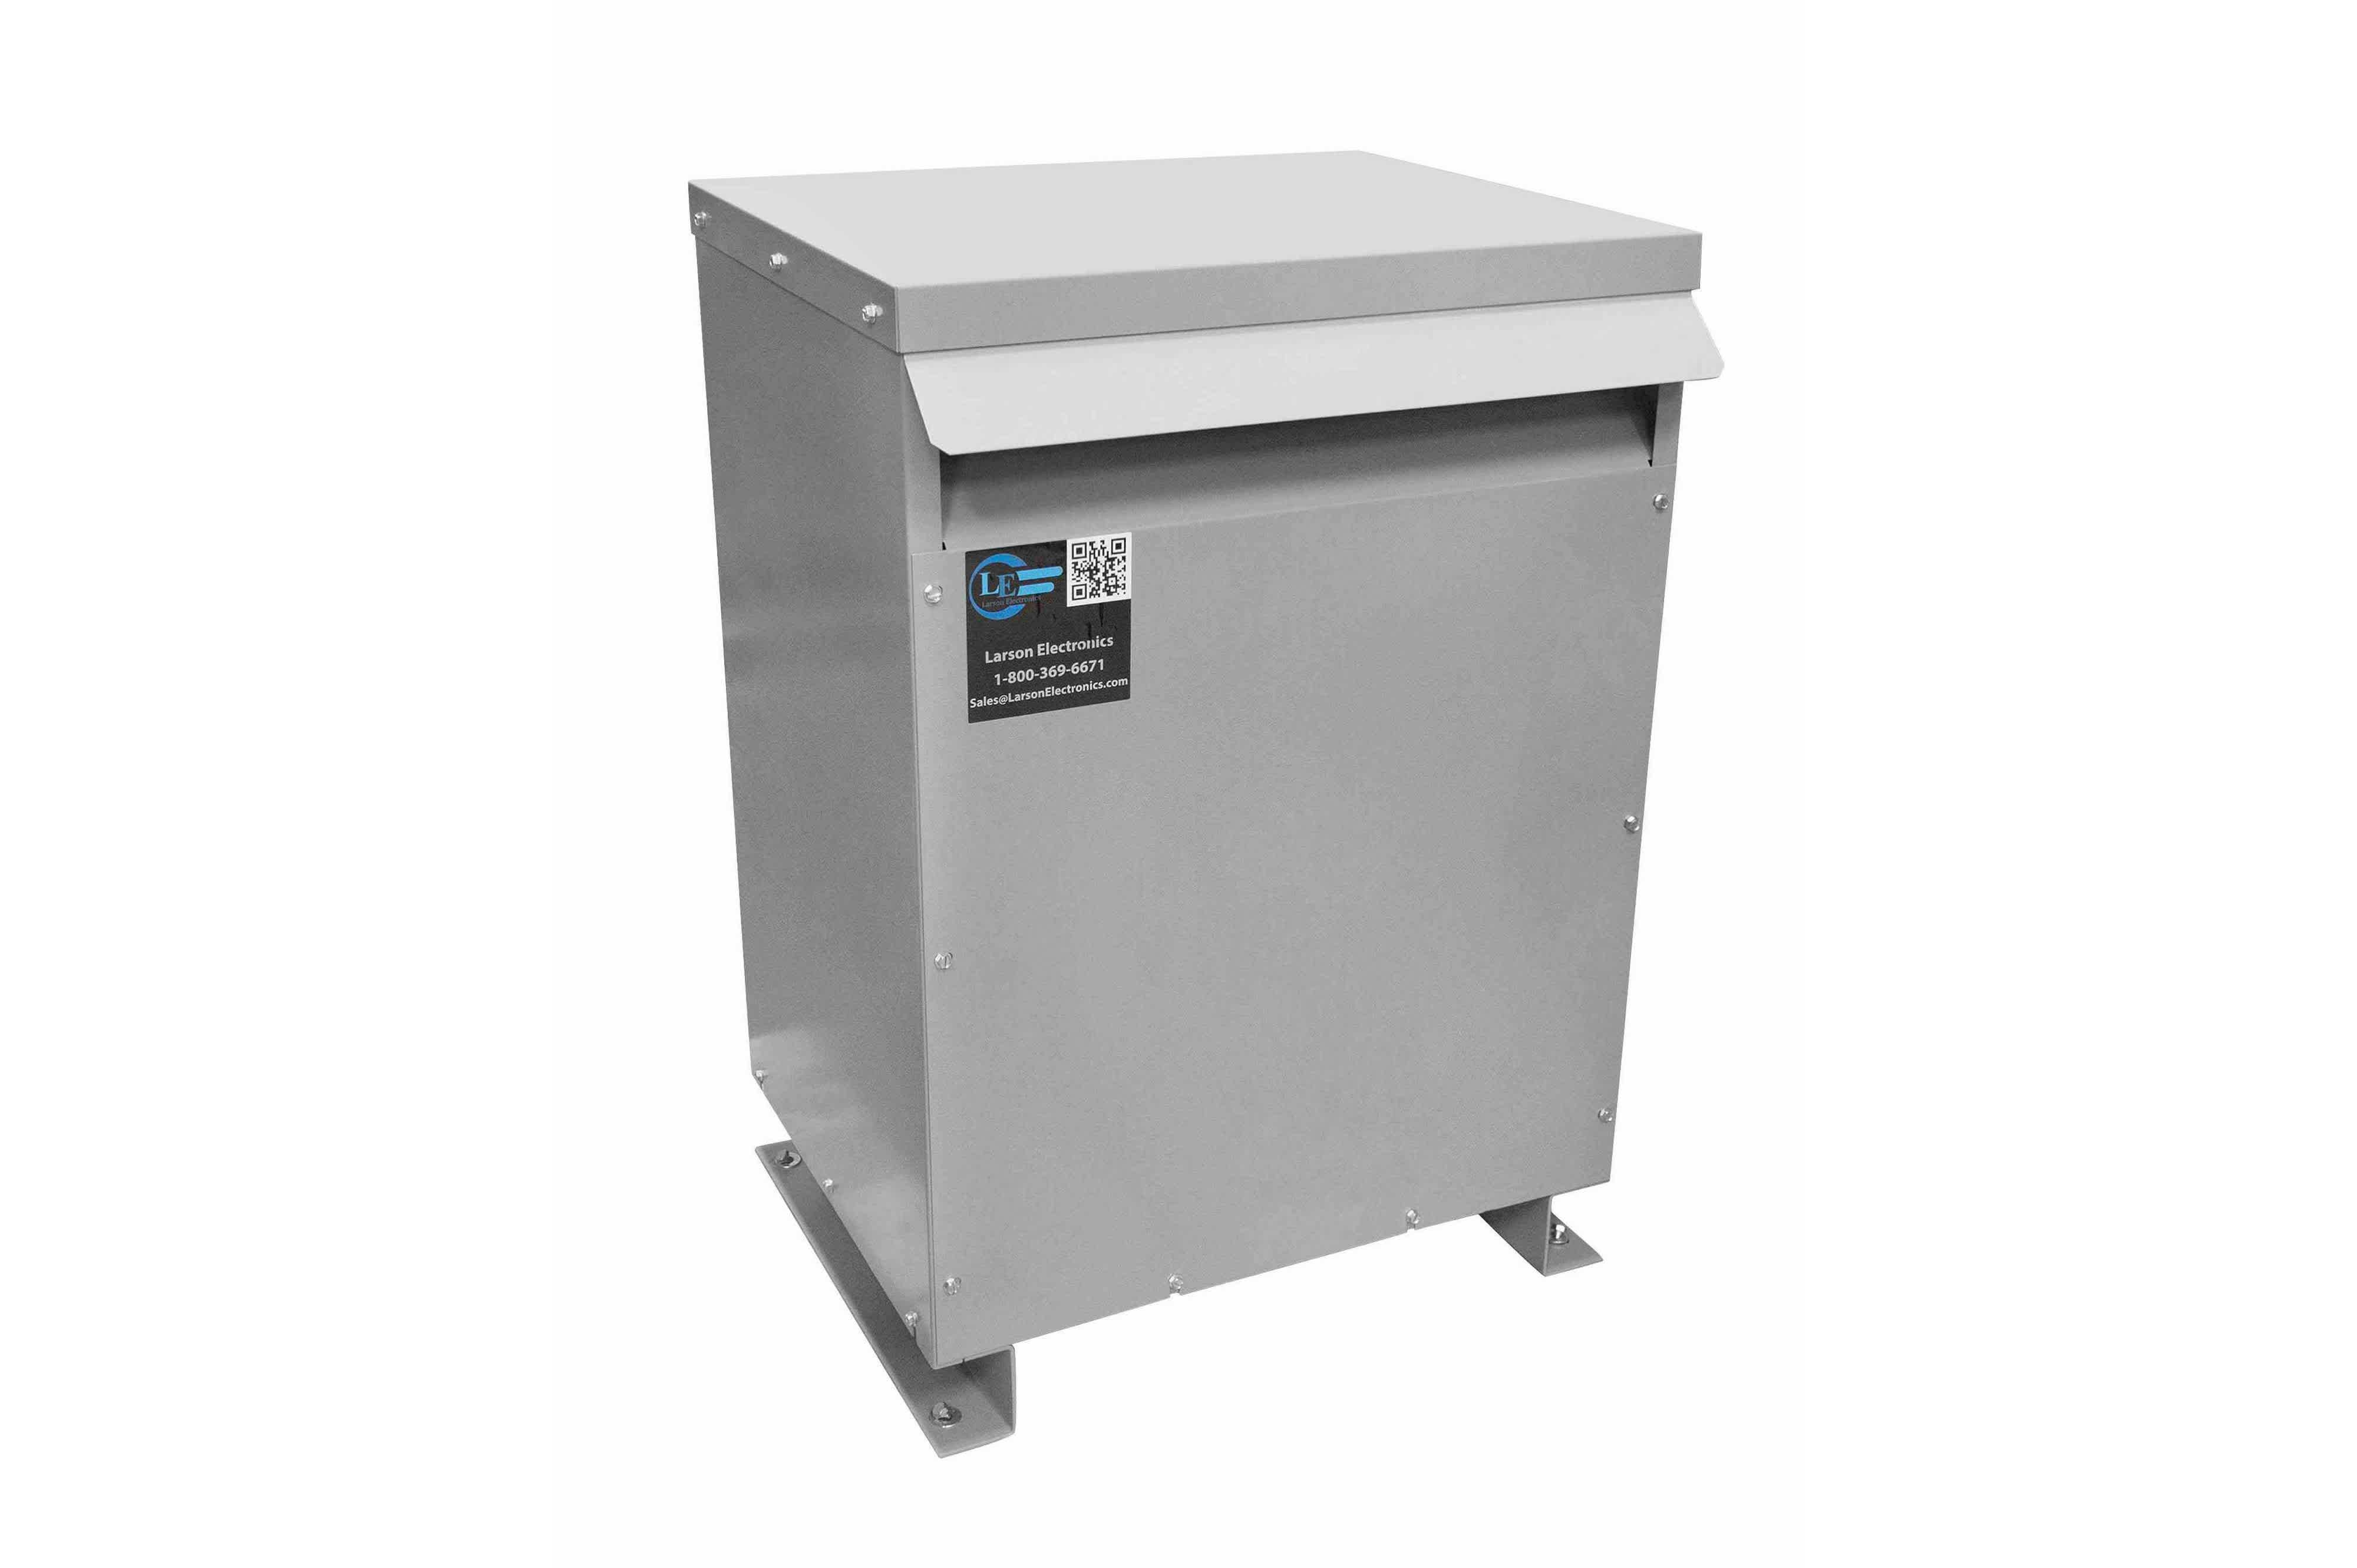 22.5 kVA 3PH Isolation Transformer, 208V Wye Primary, 415Y/240 Wye-N Secondary, N3R, Ventilated, 60 Hz